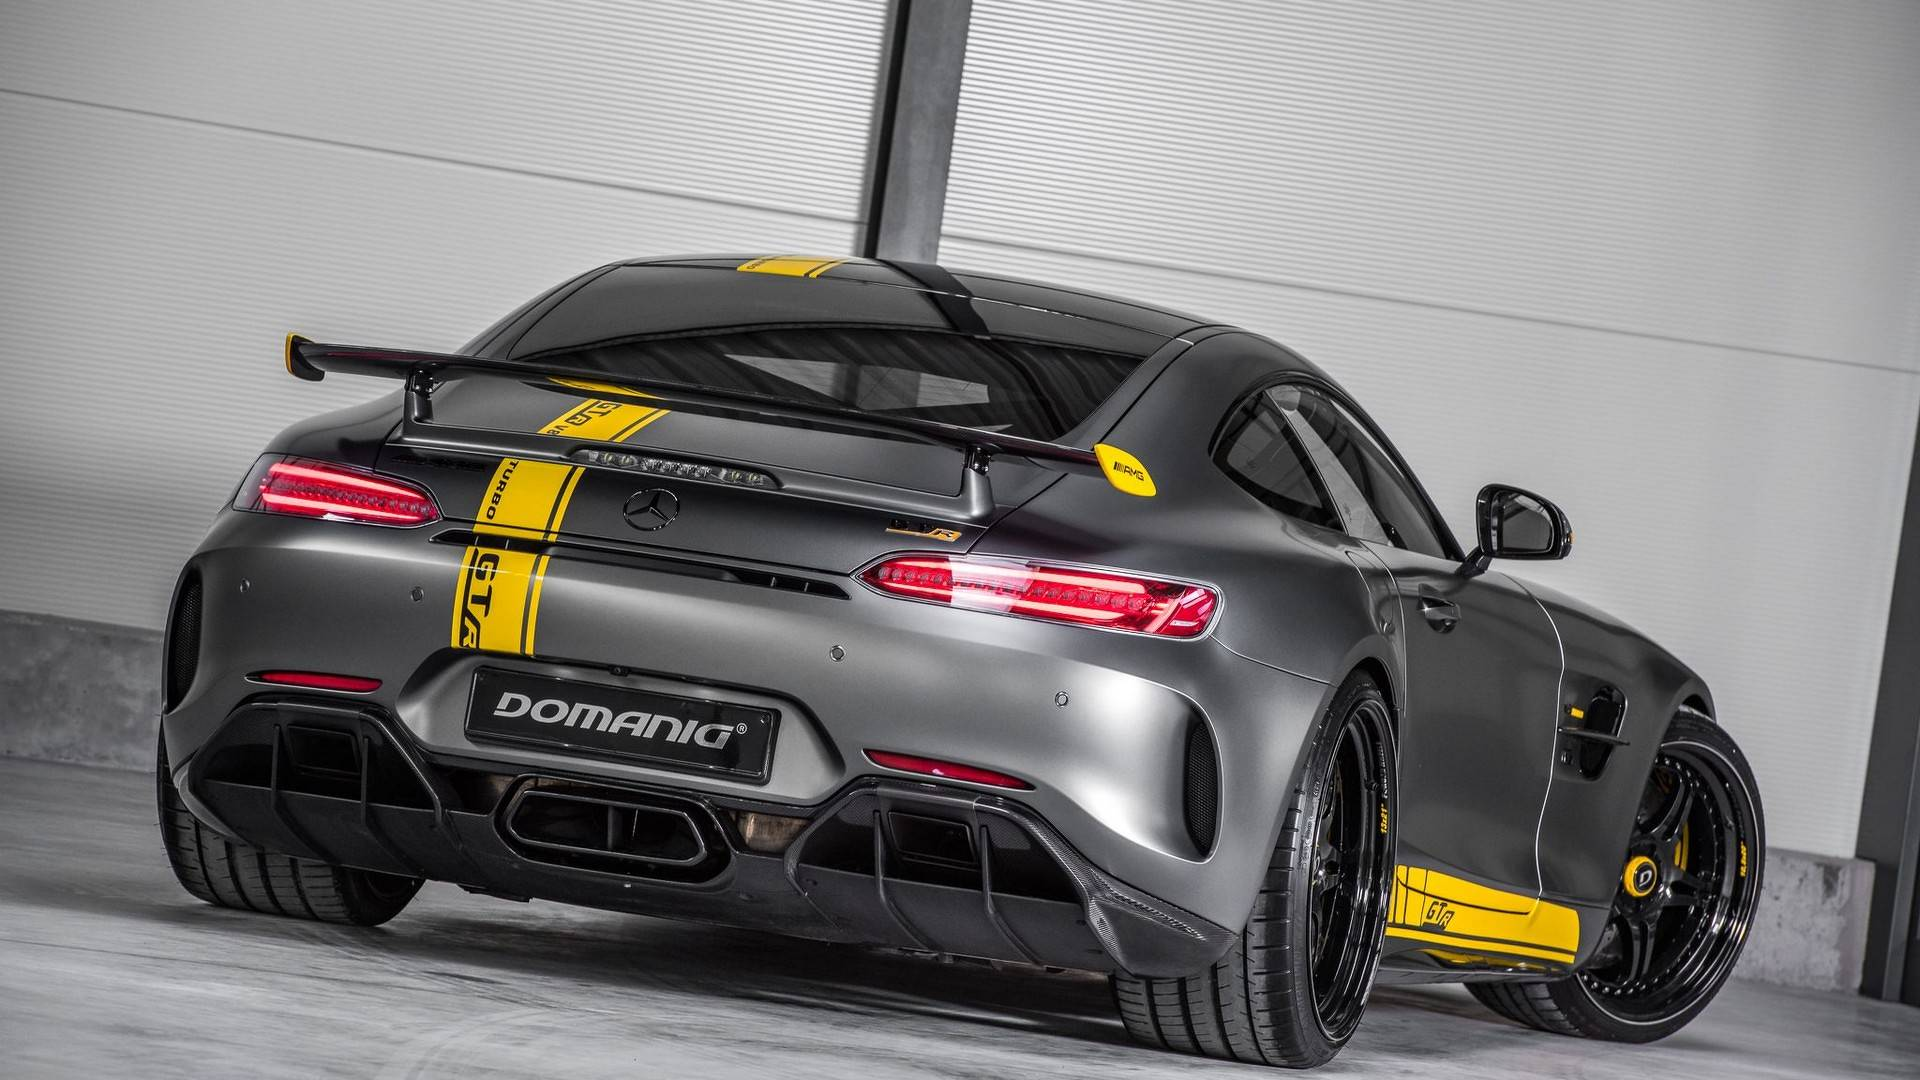 Domanig Gtr Is Not Your Average Mercedes Amg Gt R Tuning Job